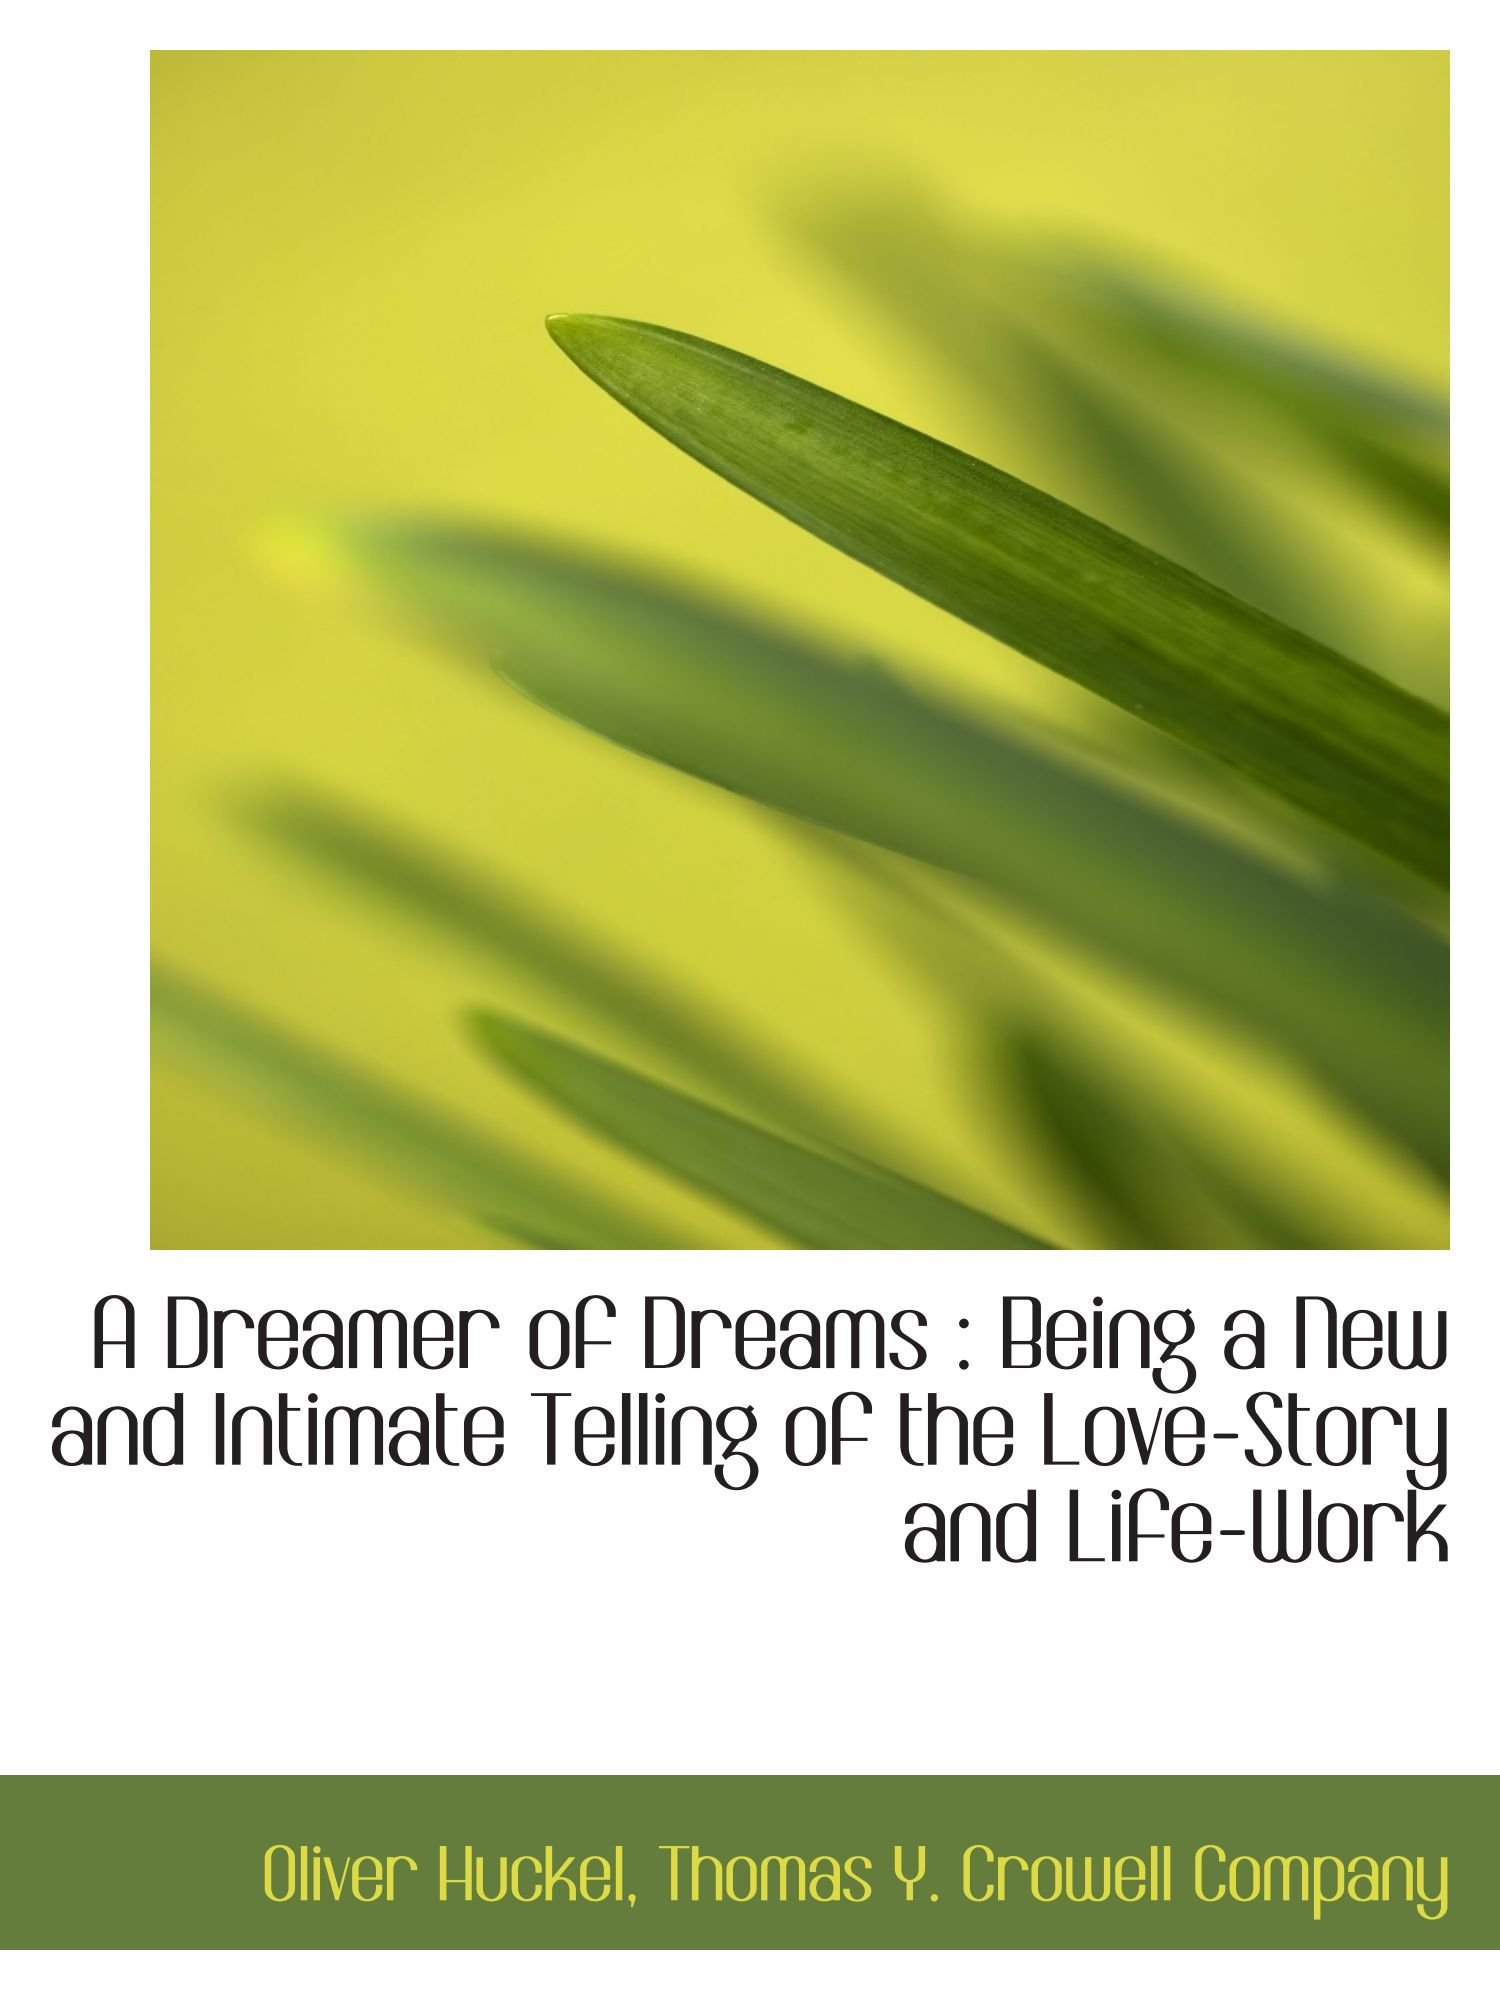 A Dreamer of Dreams : Being a New and Intimate Telling of the Love-Story and Life-Work pdf